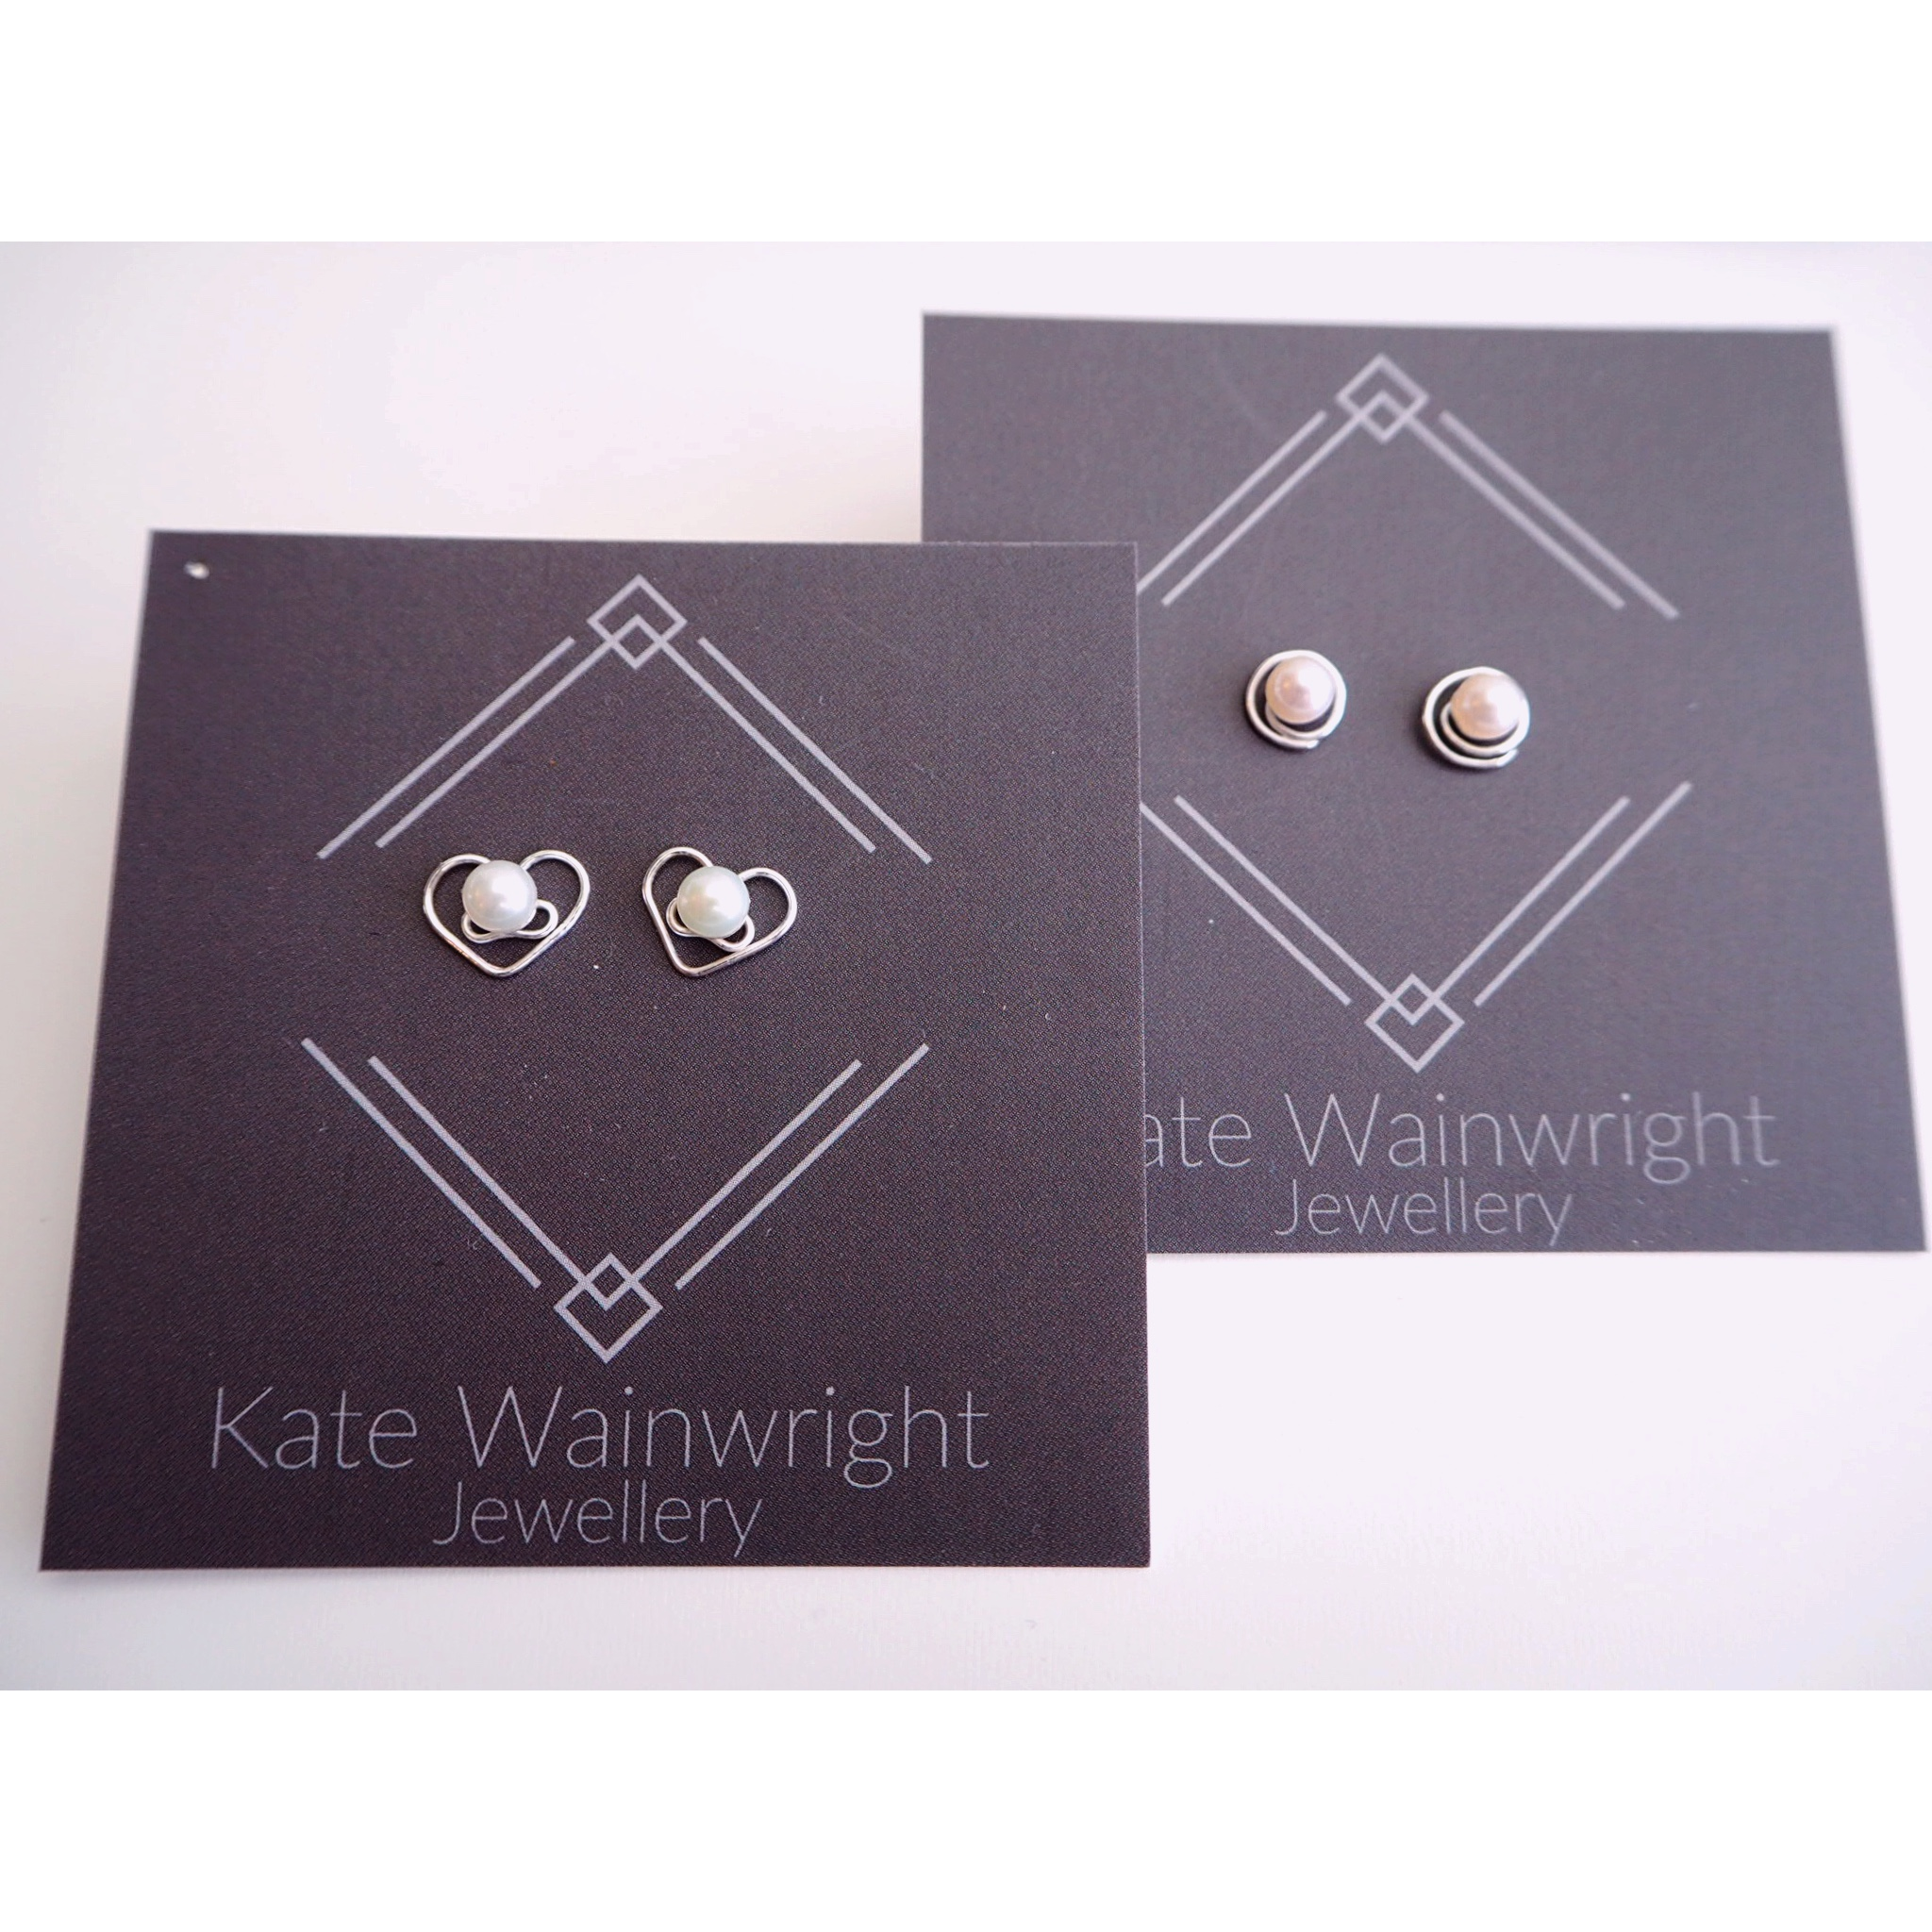 Kate Wainwright Jewellery | Silver and pearl wedding studs Bride and Bridesmaid